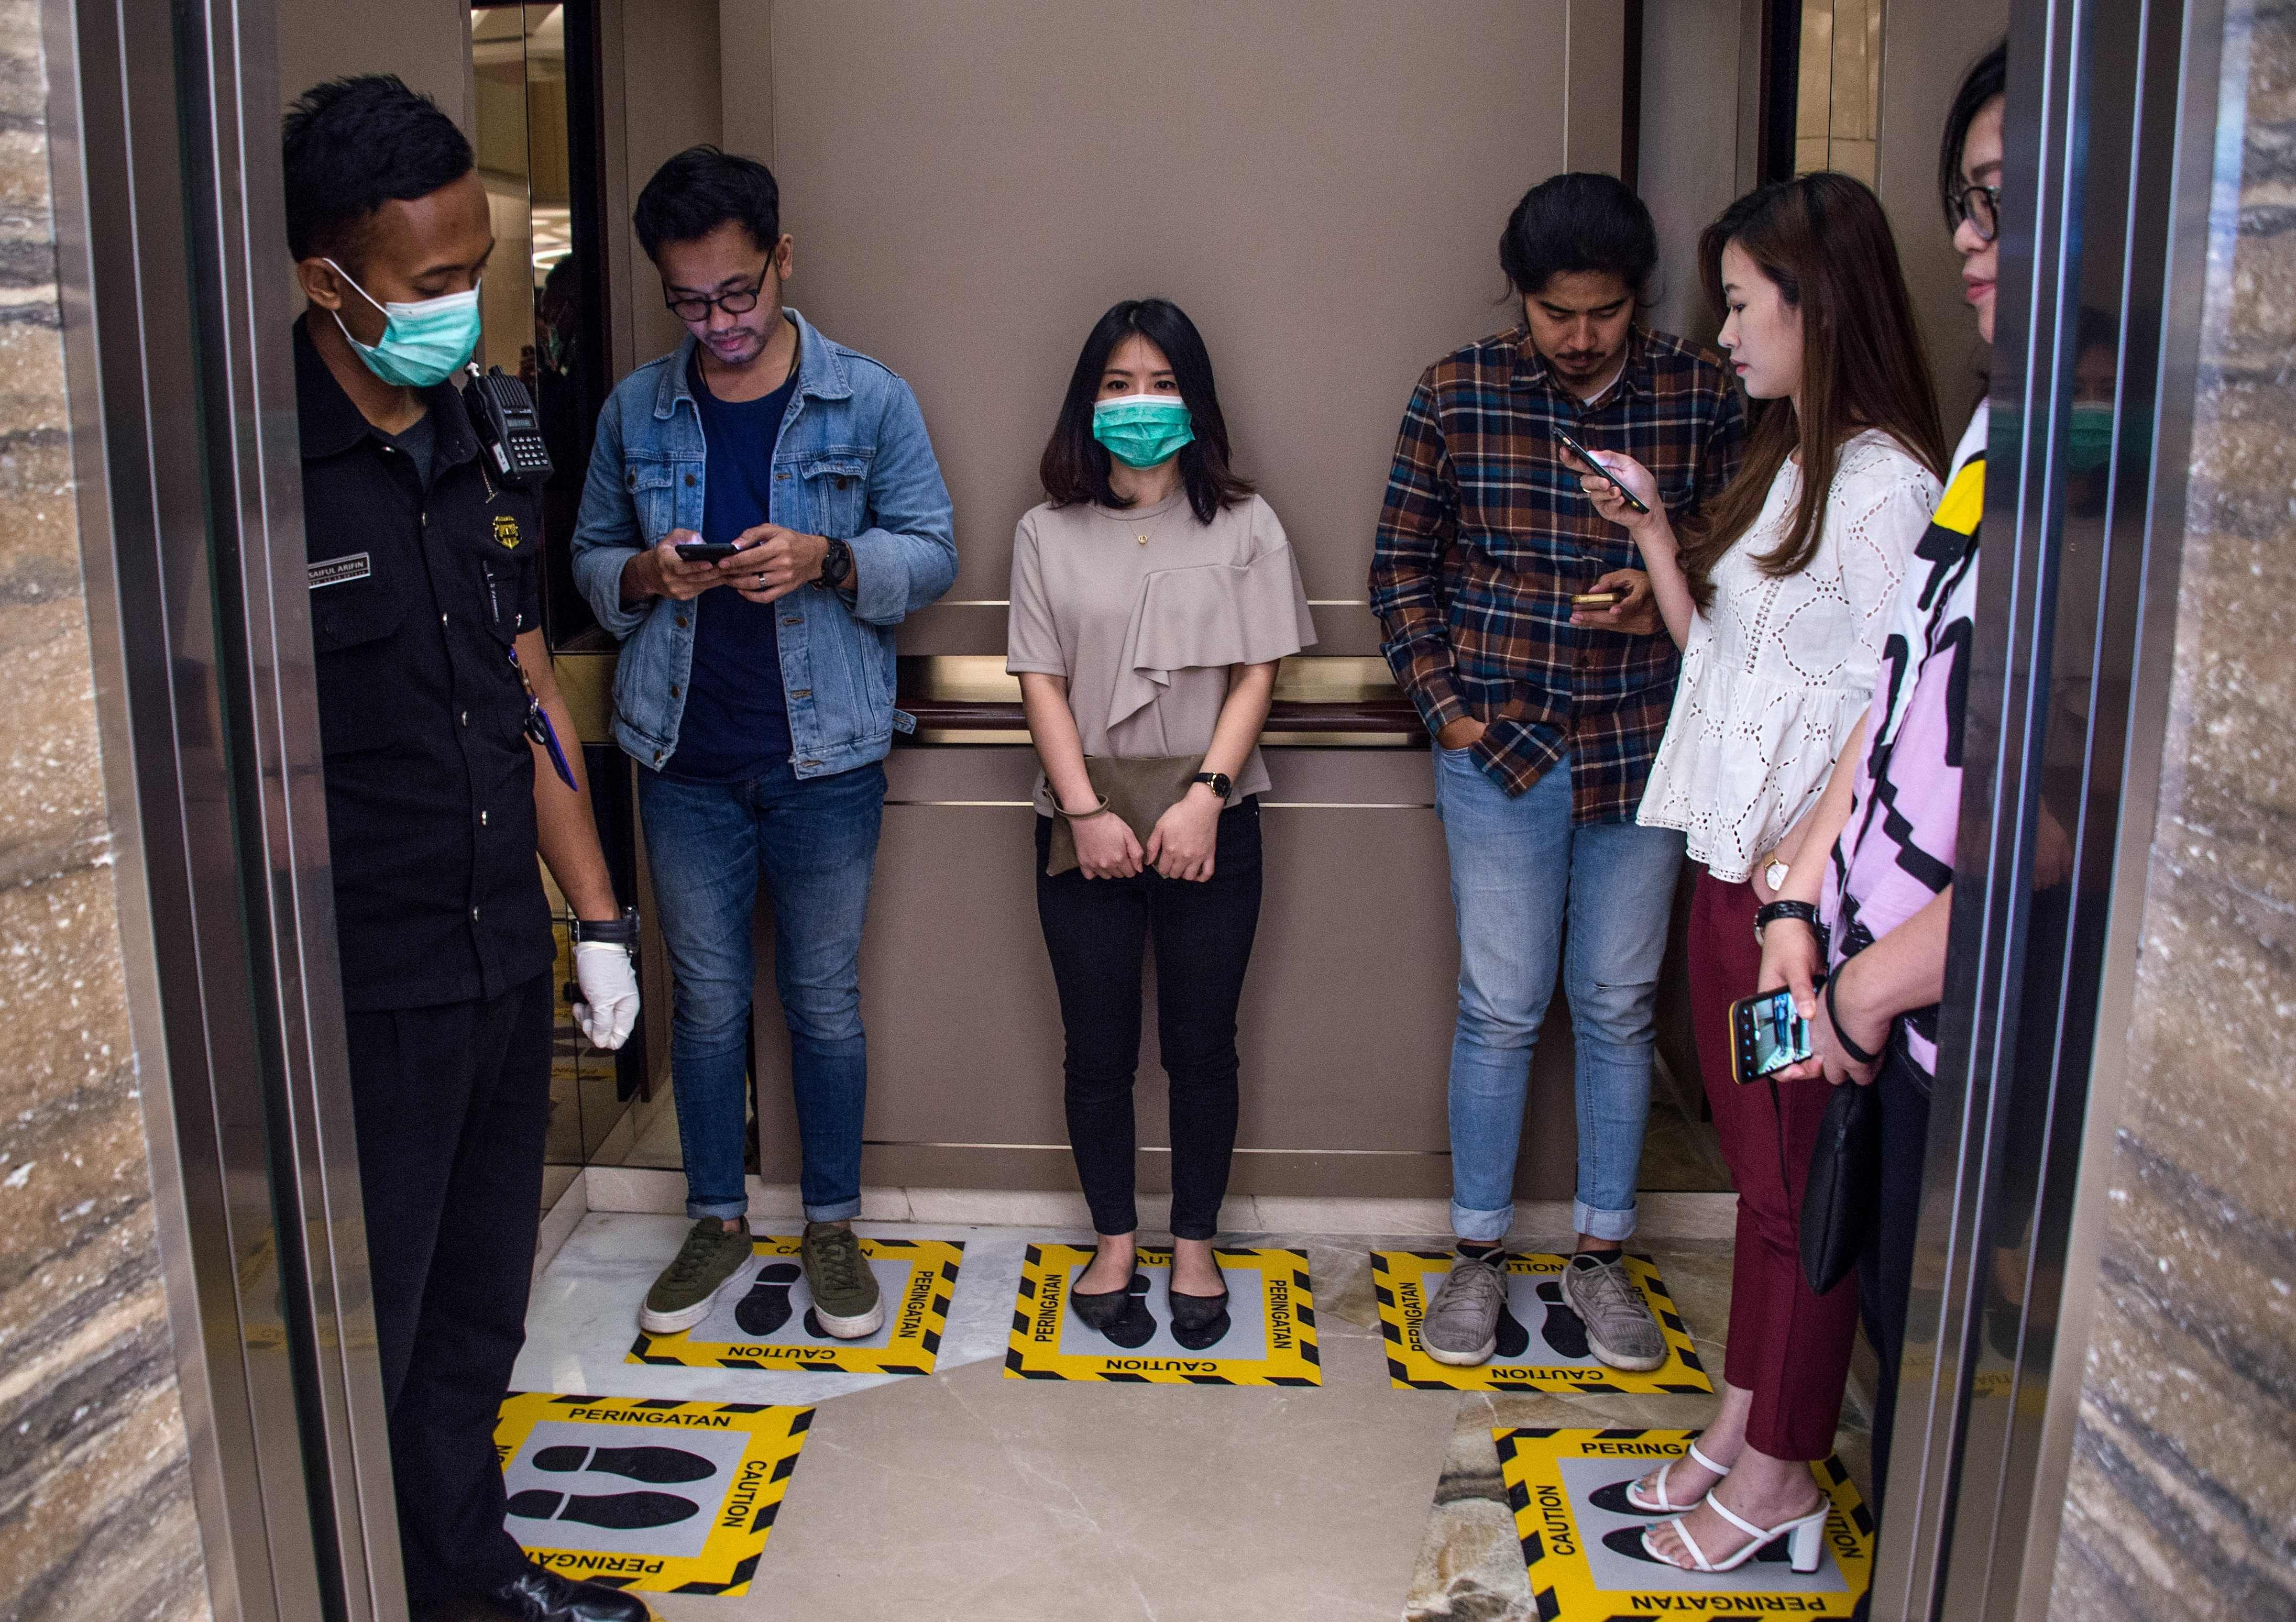 People stand on designated areas to ensure social distancing inside an elevator at a shopping mall in Surabaya on March 19, 2020, amid concerns of the COVID-19 coronavirus outbreak. (AFP Photo)